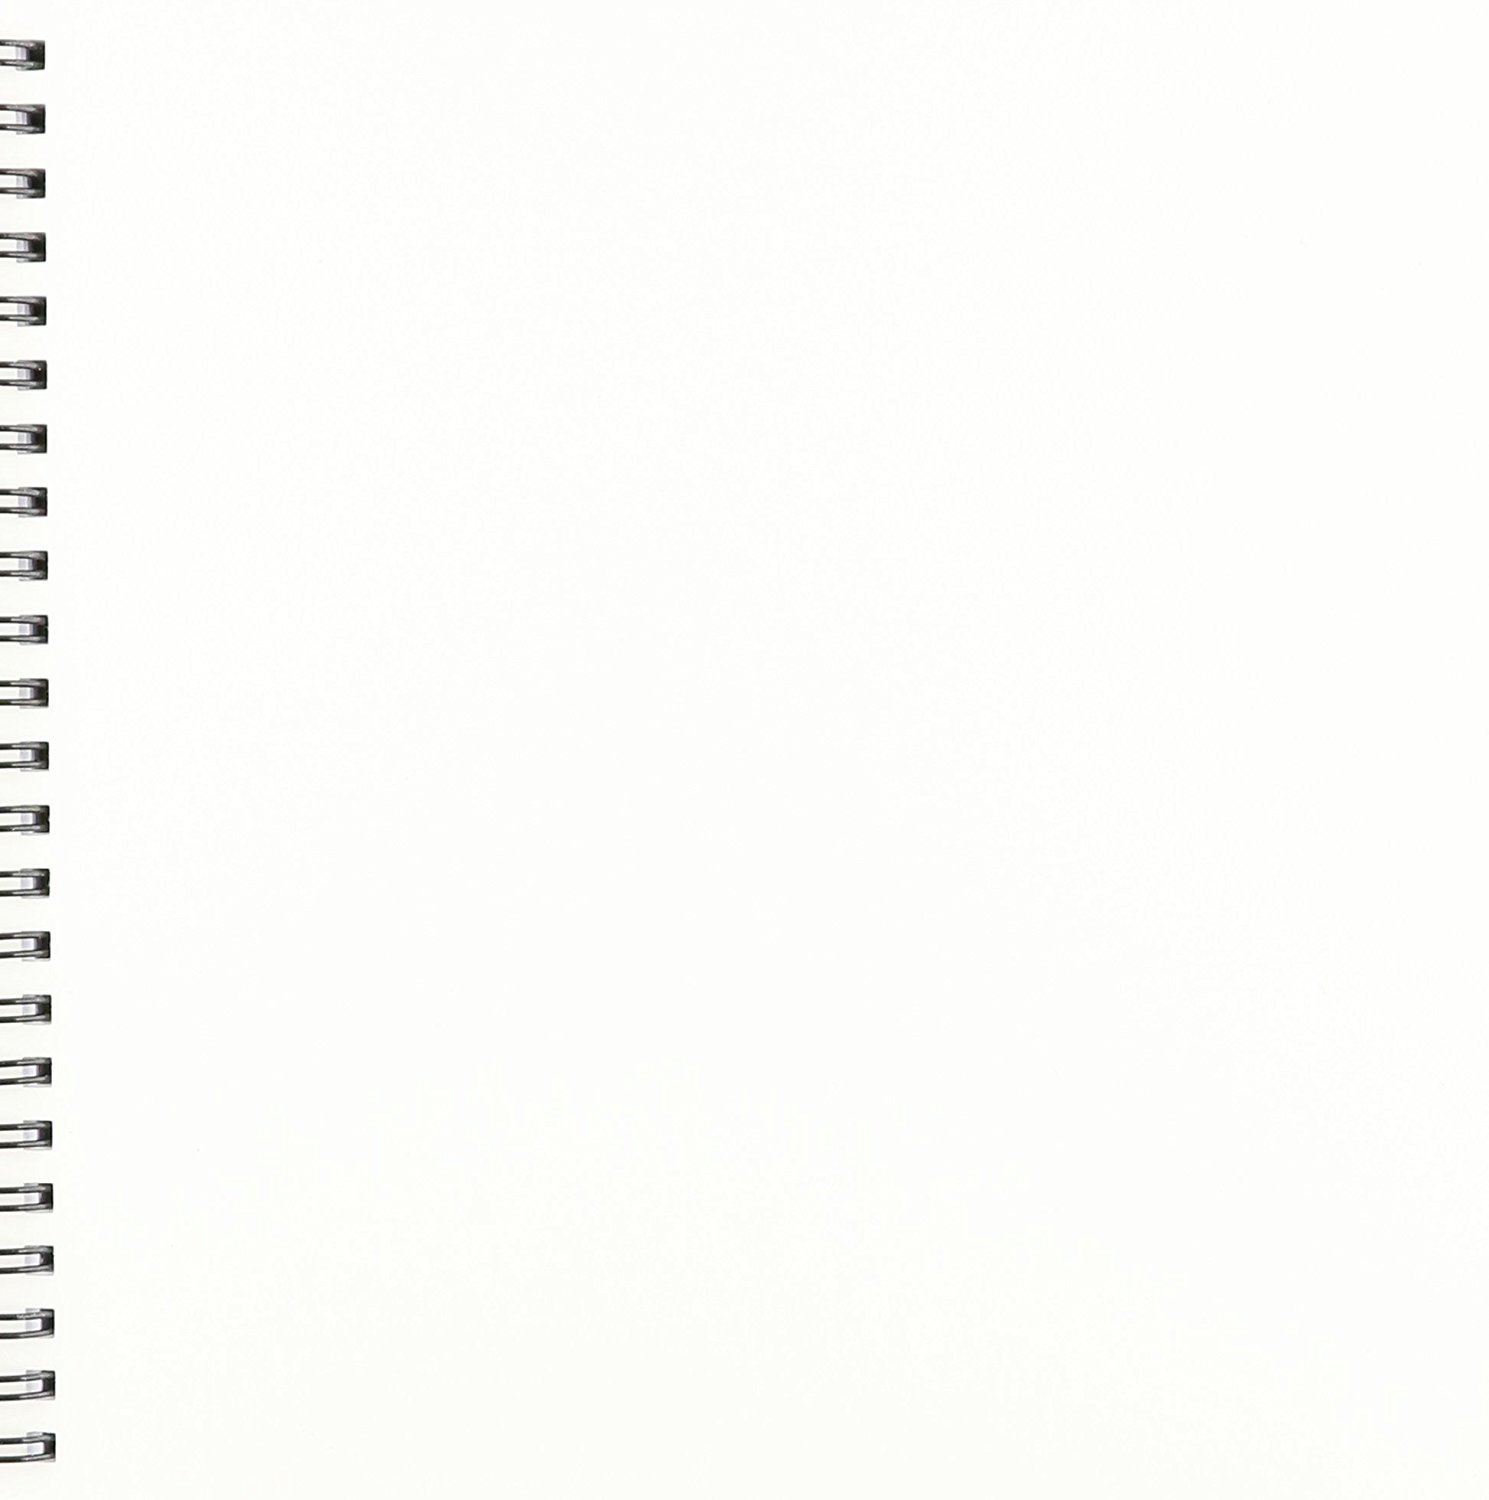 Rose Db 159881 1 Pure White Bright Colorless Plain Simple One Single Solid Color Drawing Book 8 By Inch